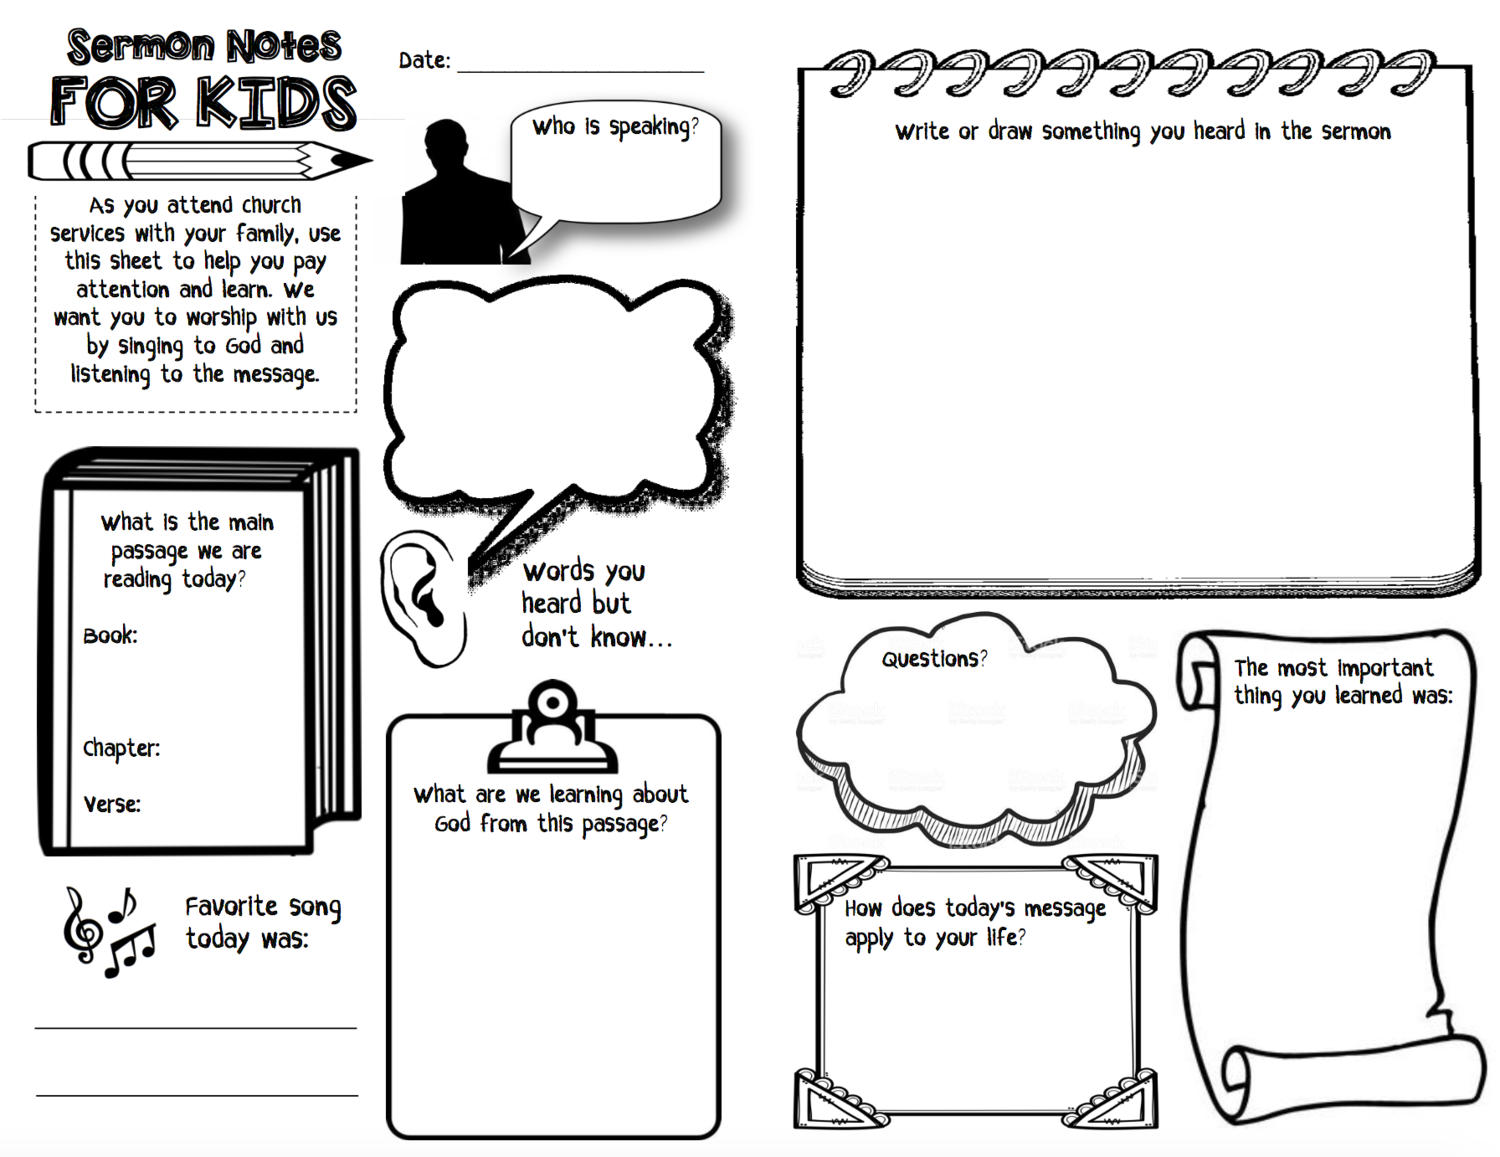 Church Bulletin And Sermon Notes For Kids